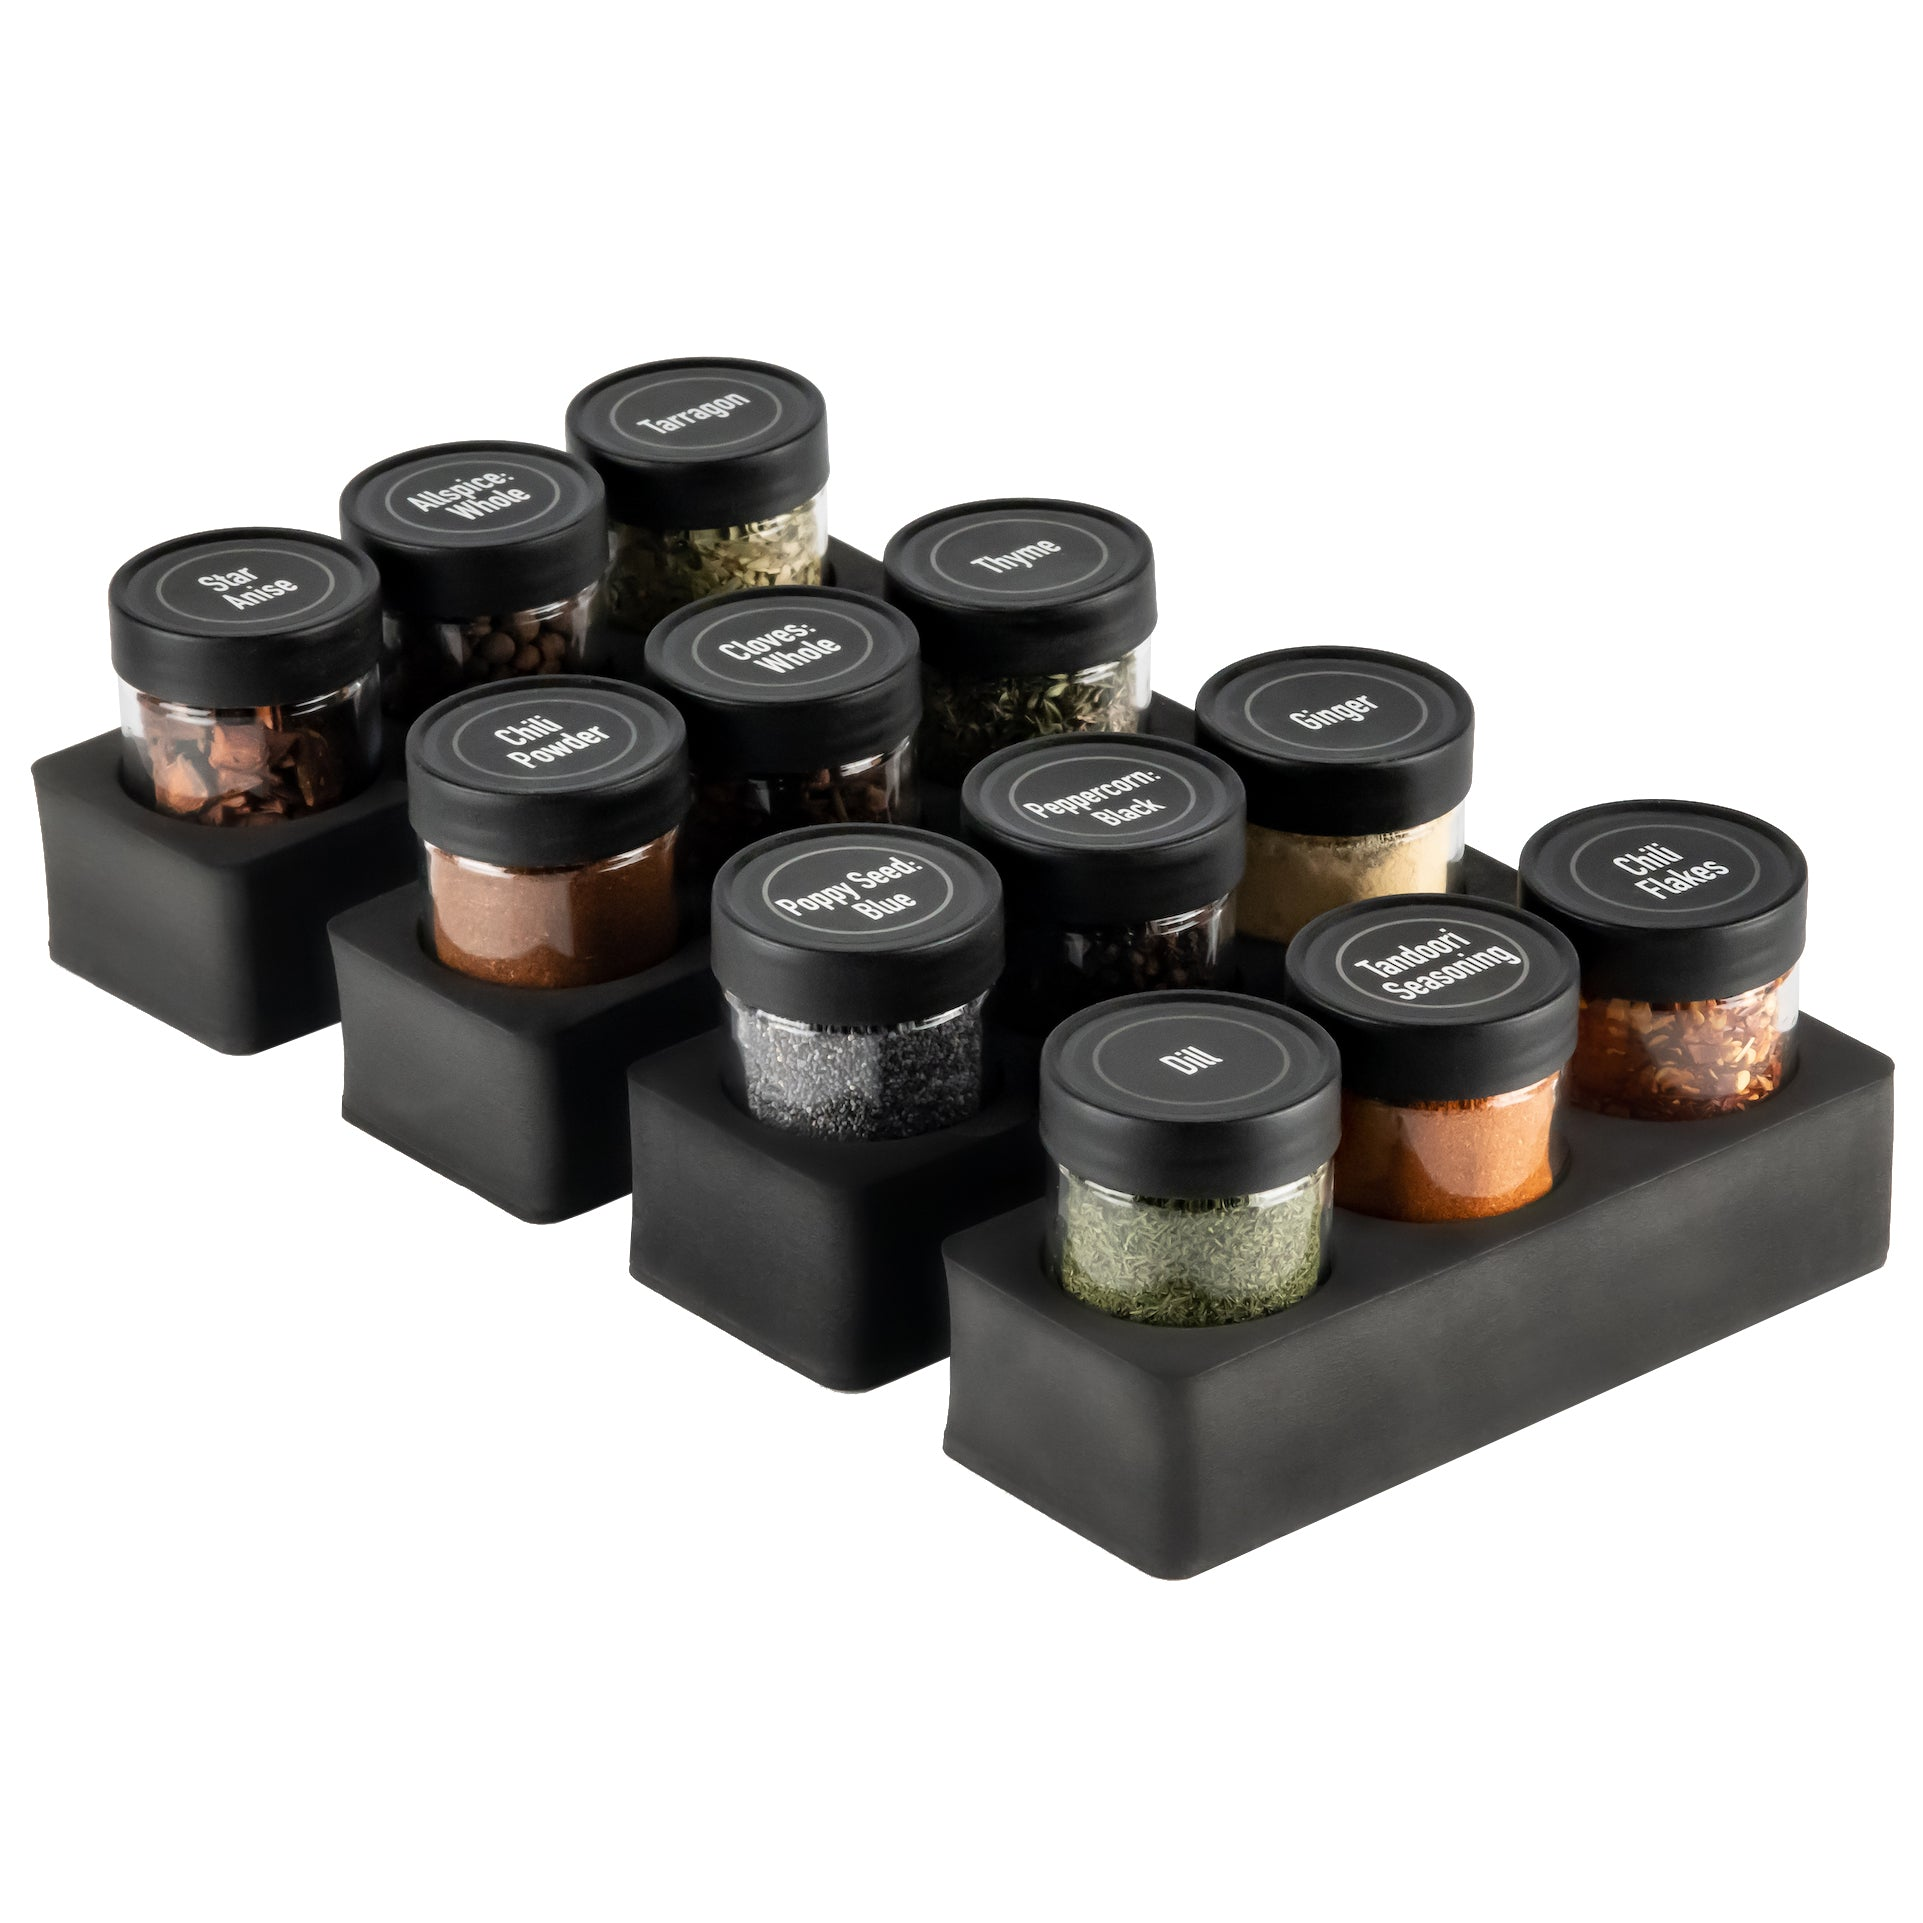 InDrawer Spice Rack